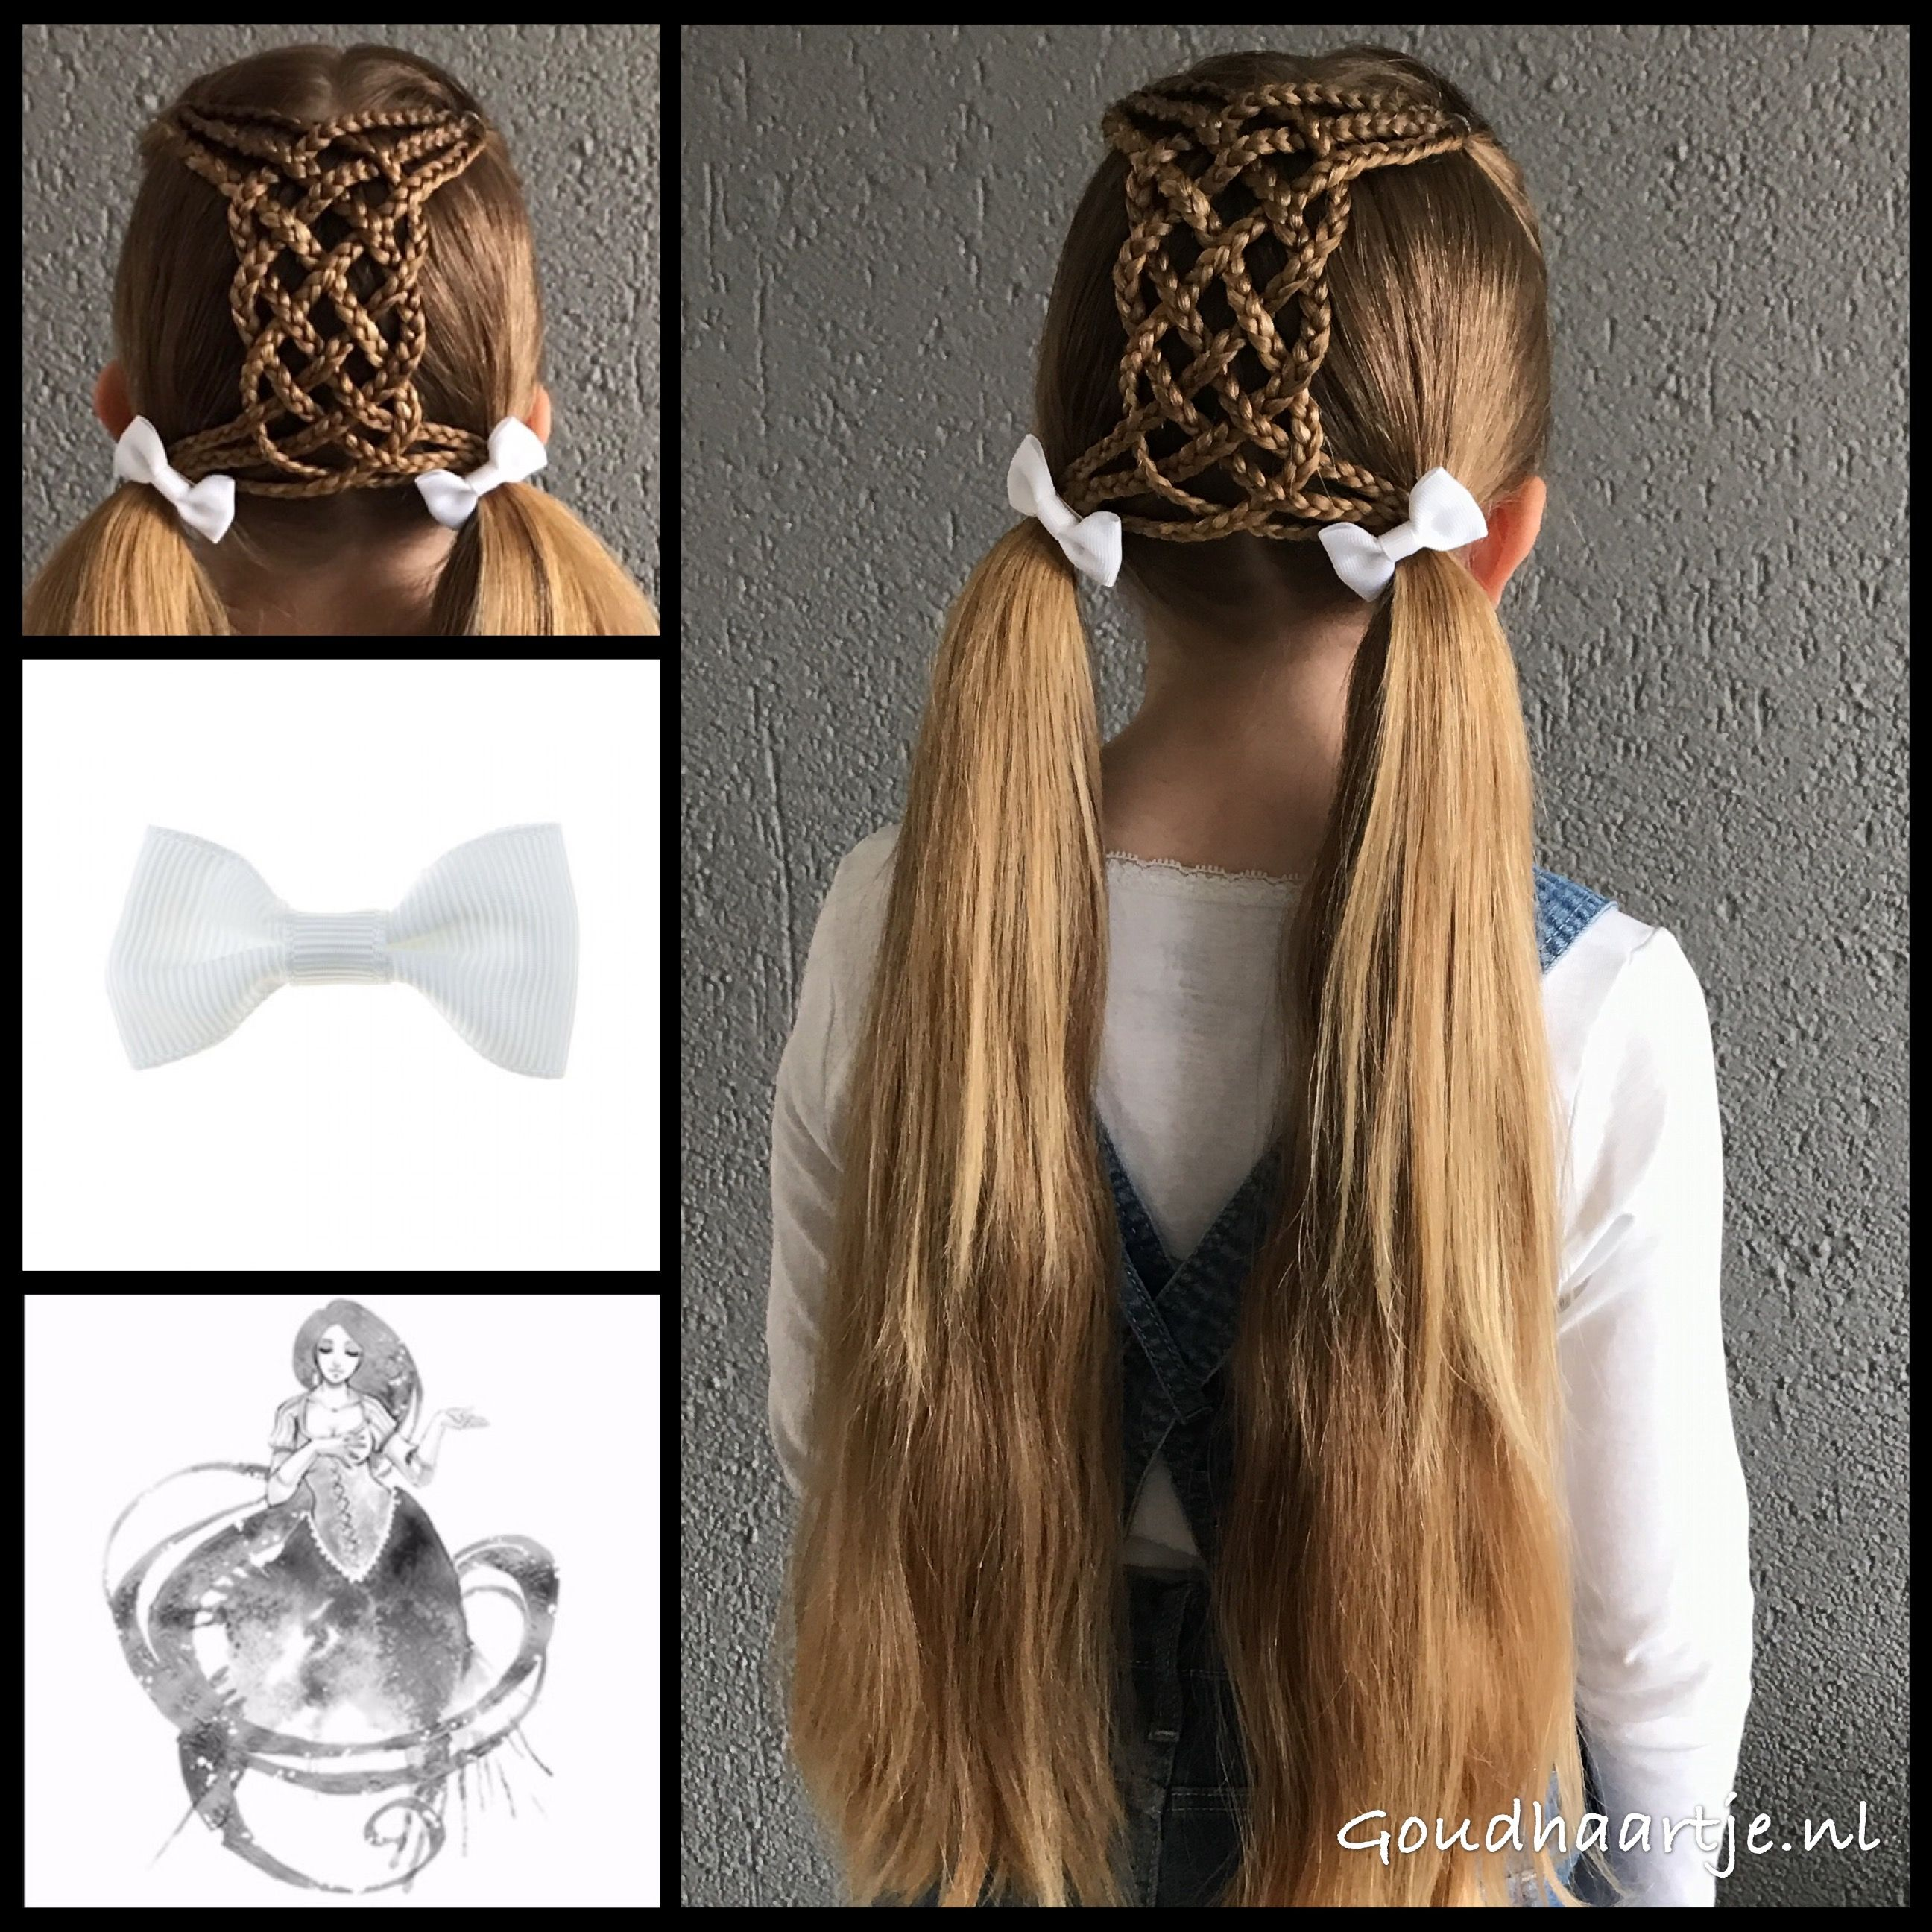 Pigtails with a six strand braid and cute bows from the webshop